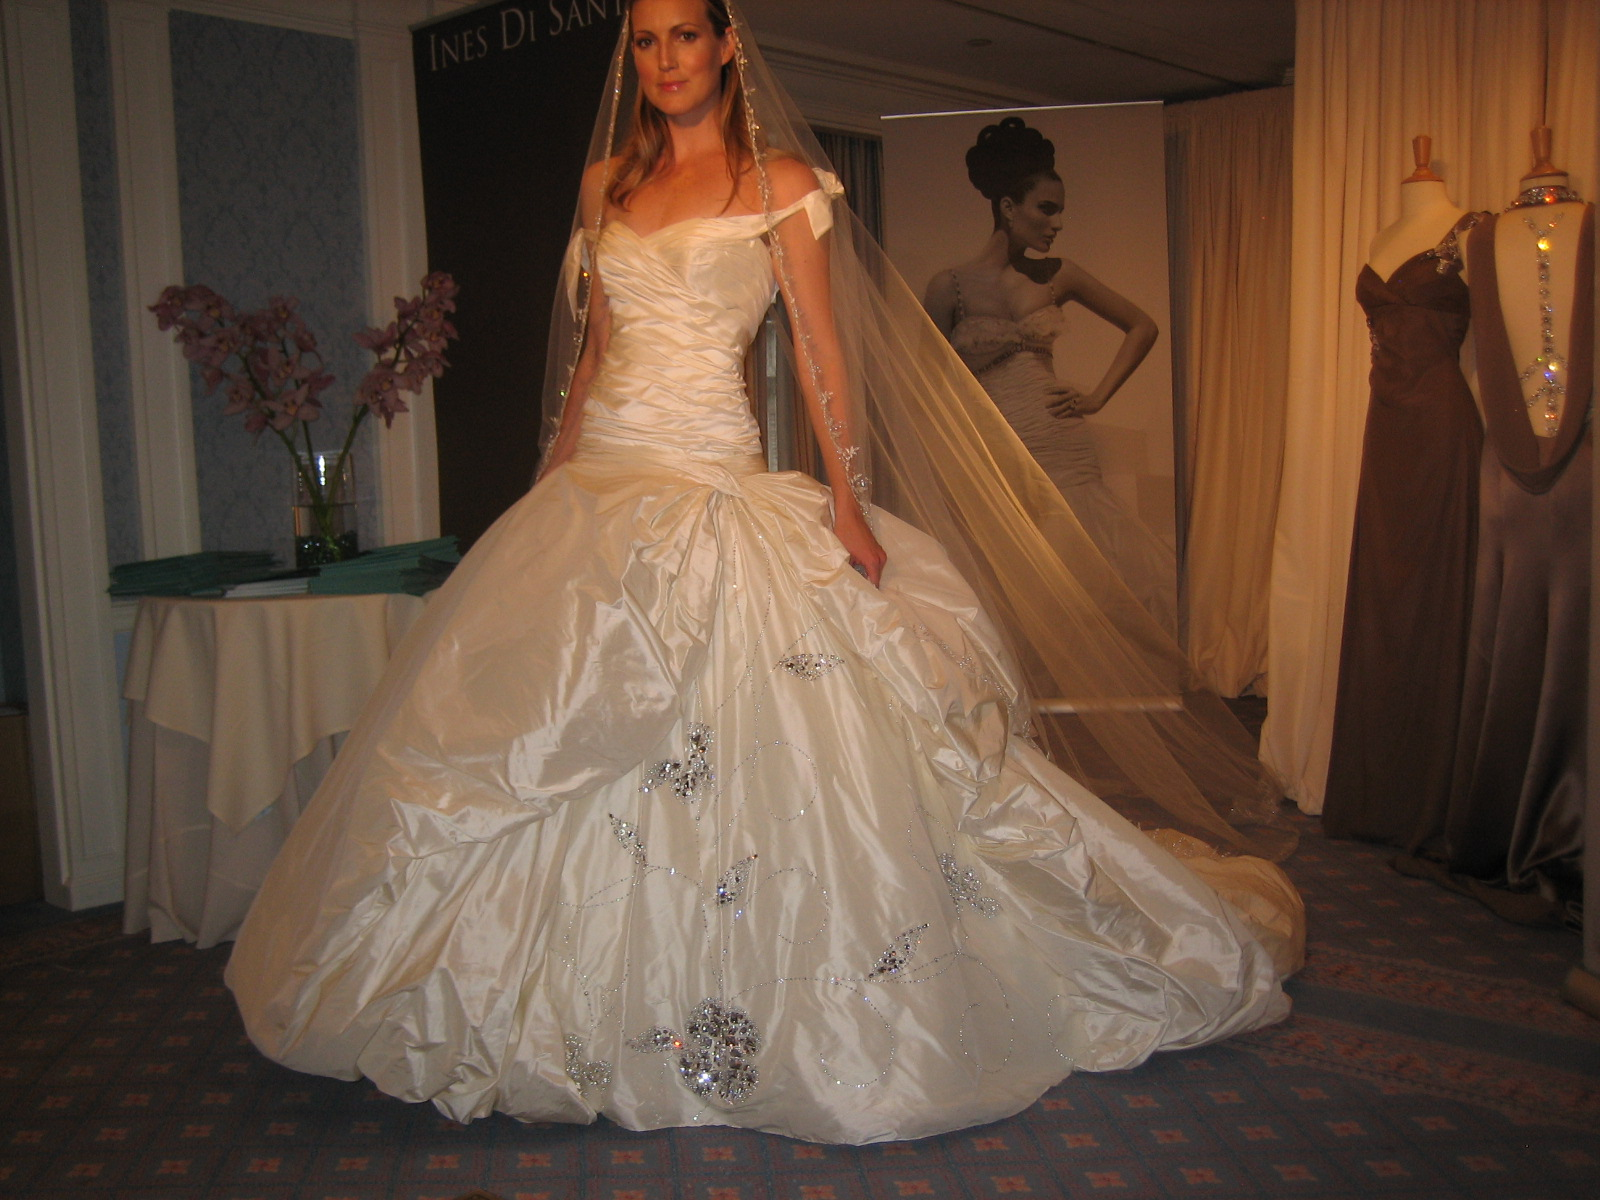 resale wedding dresses phoenix wedding bells dresses